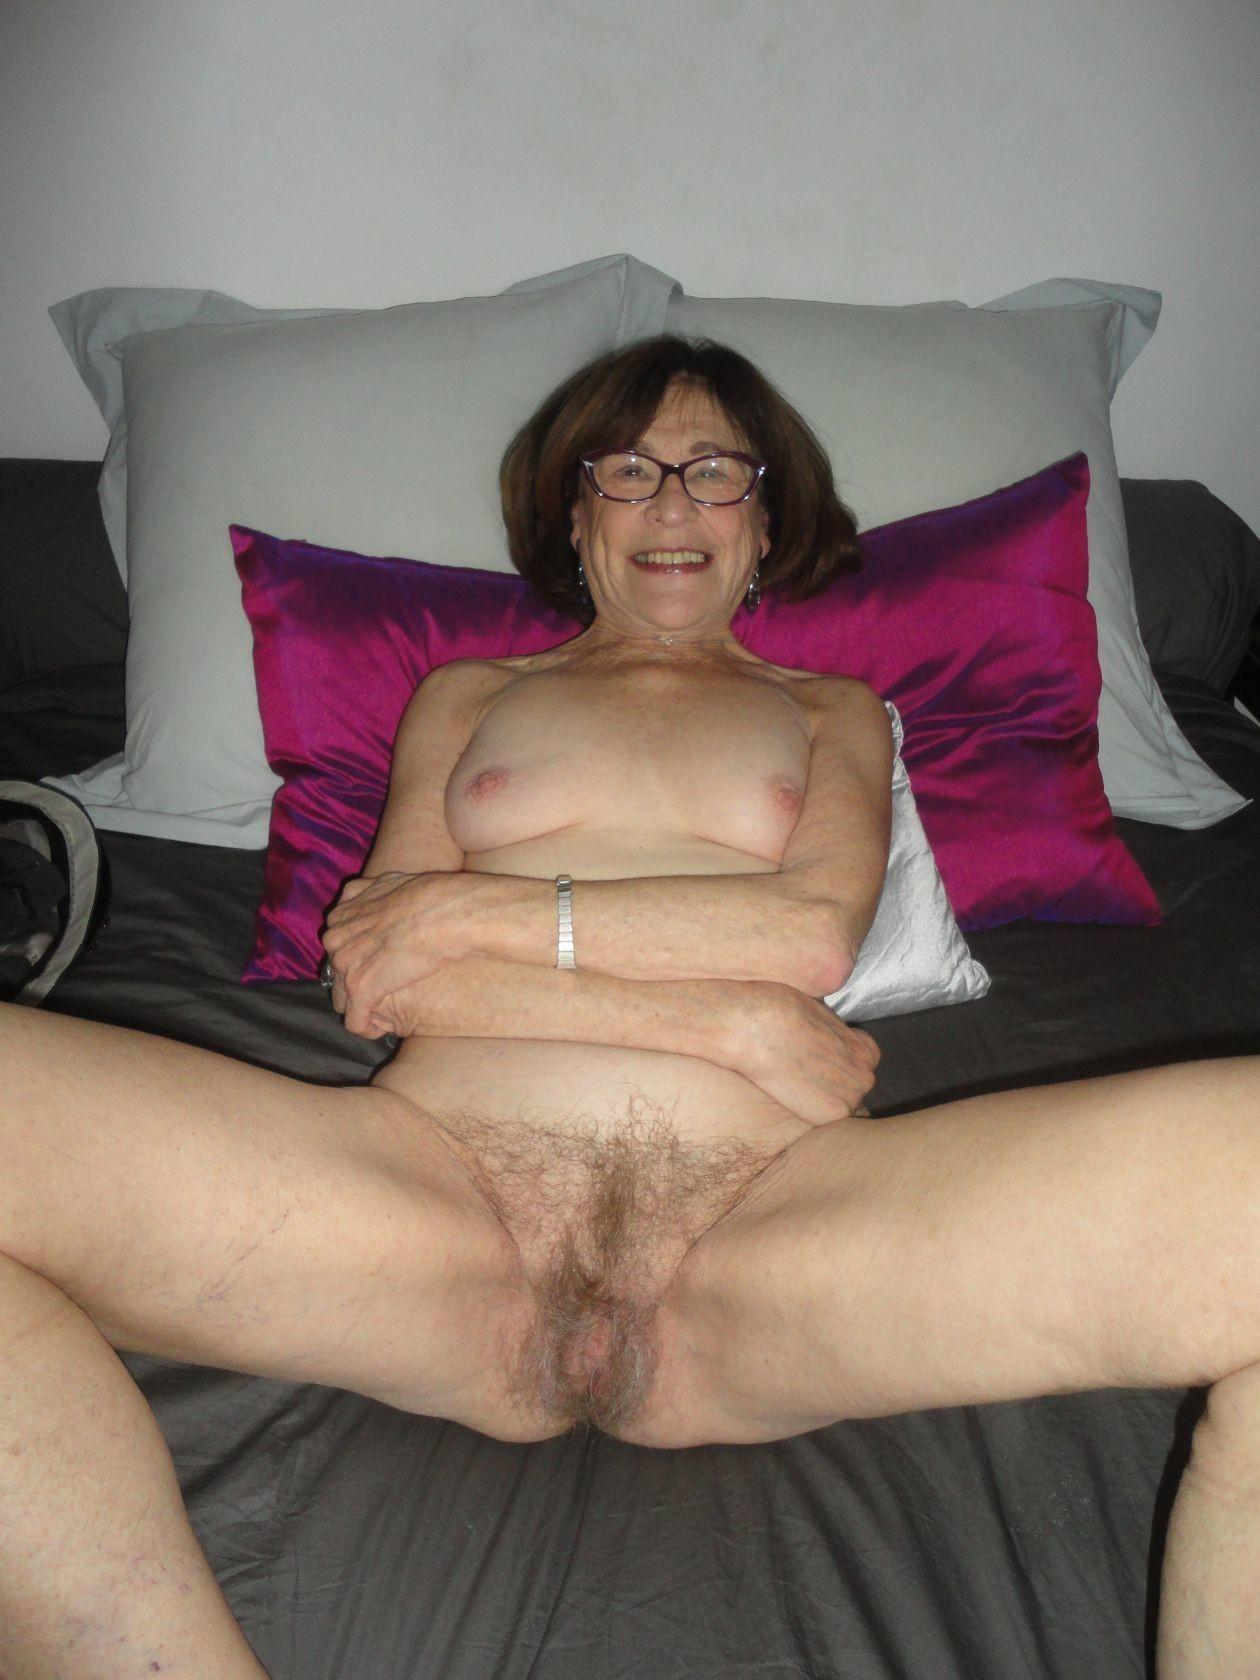 Mature granny in glasses reveals nice tits & a hairy pussy in the bedroom. Slender grannie spreading legs & posing naked